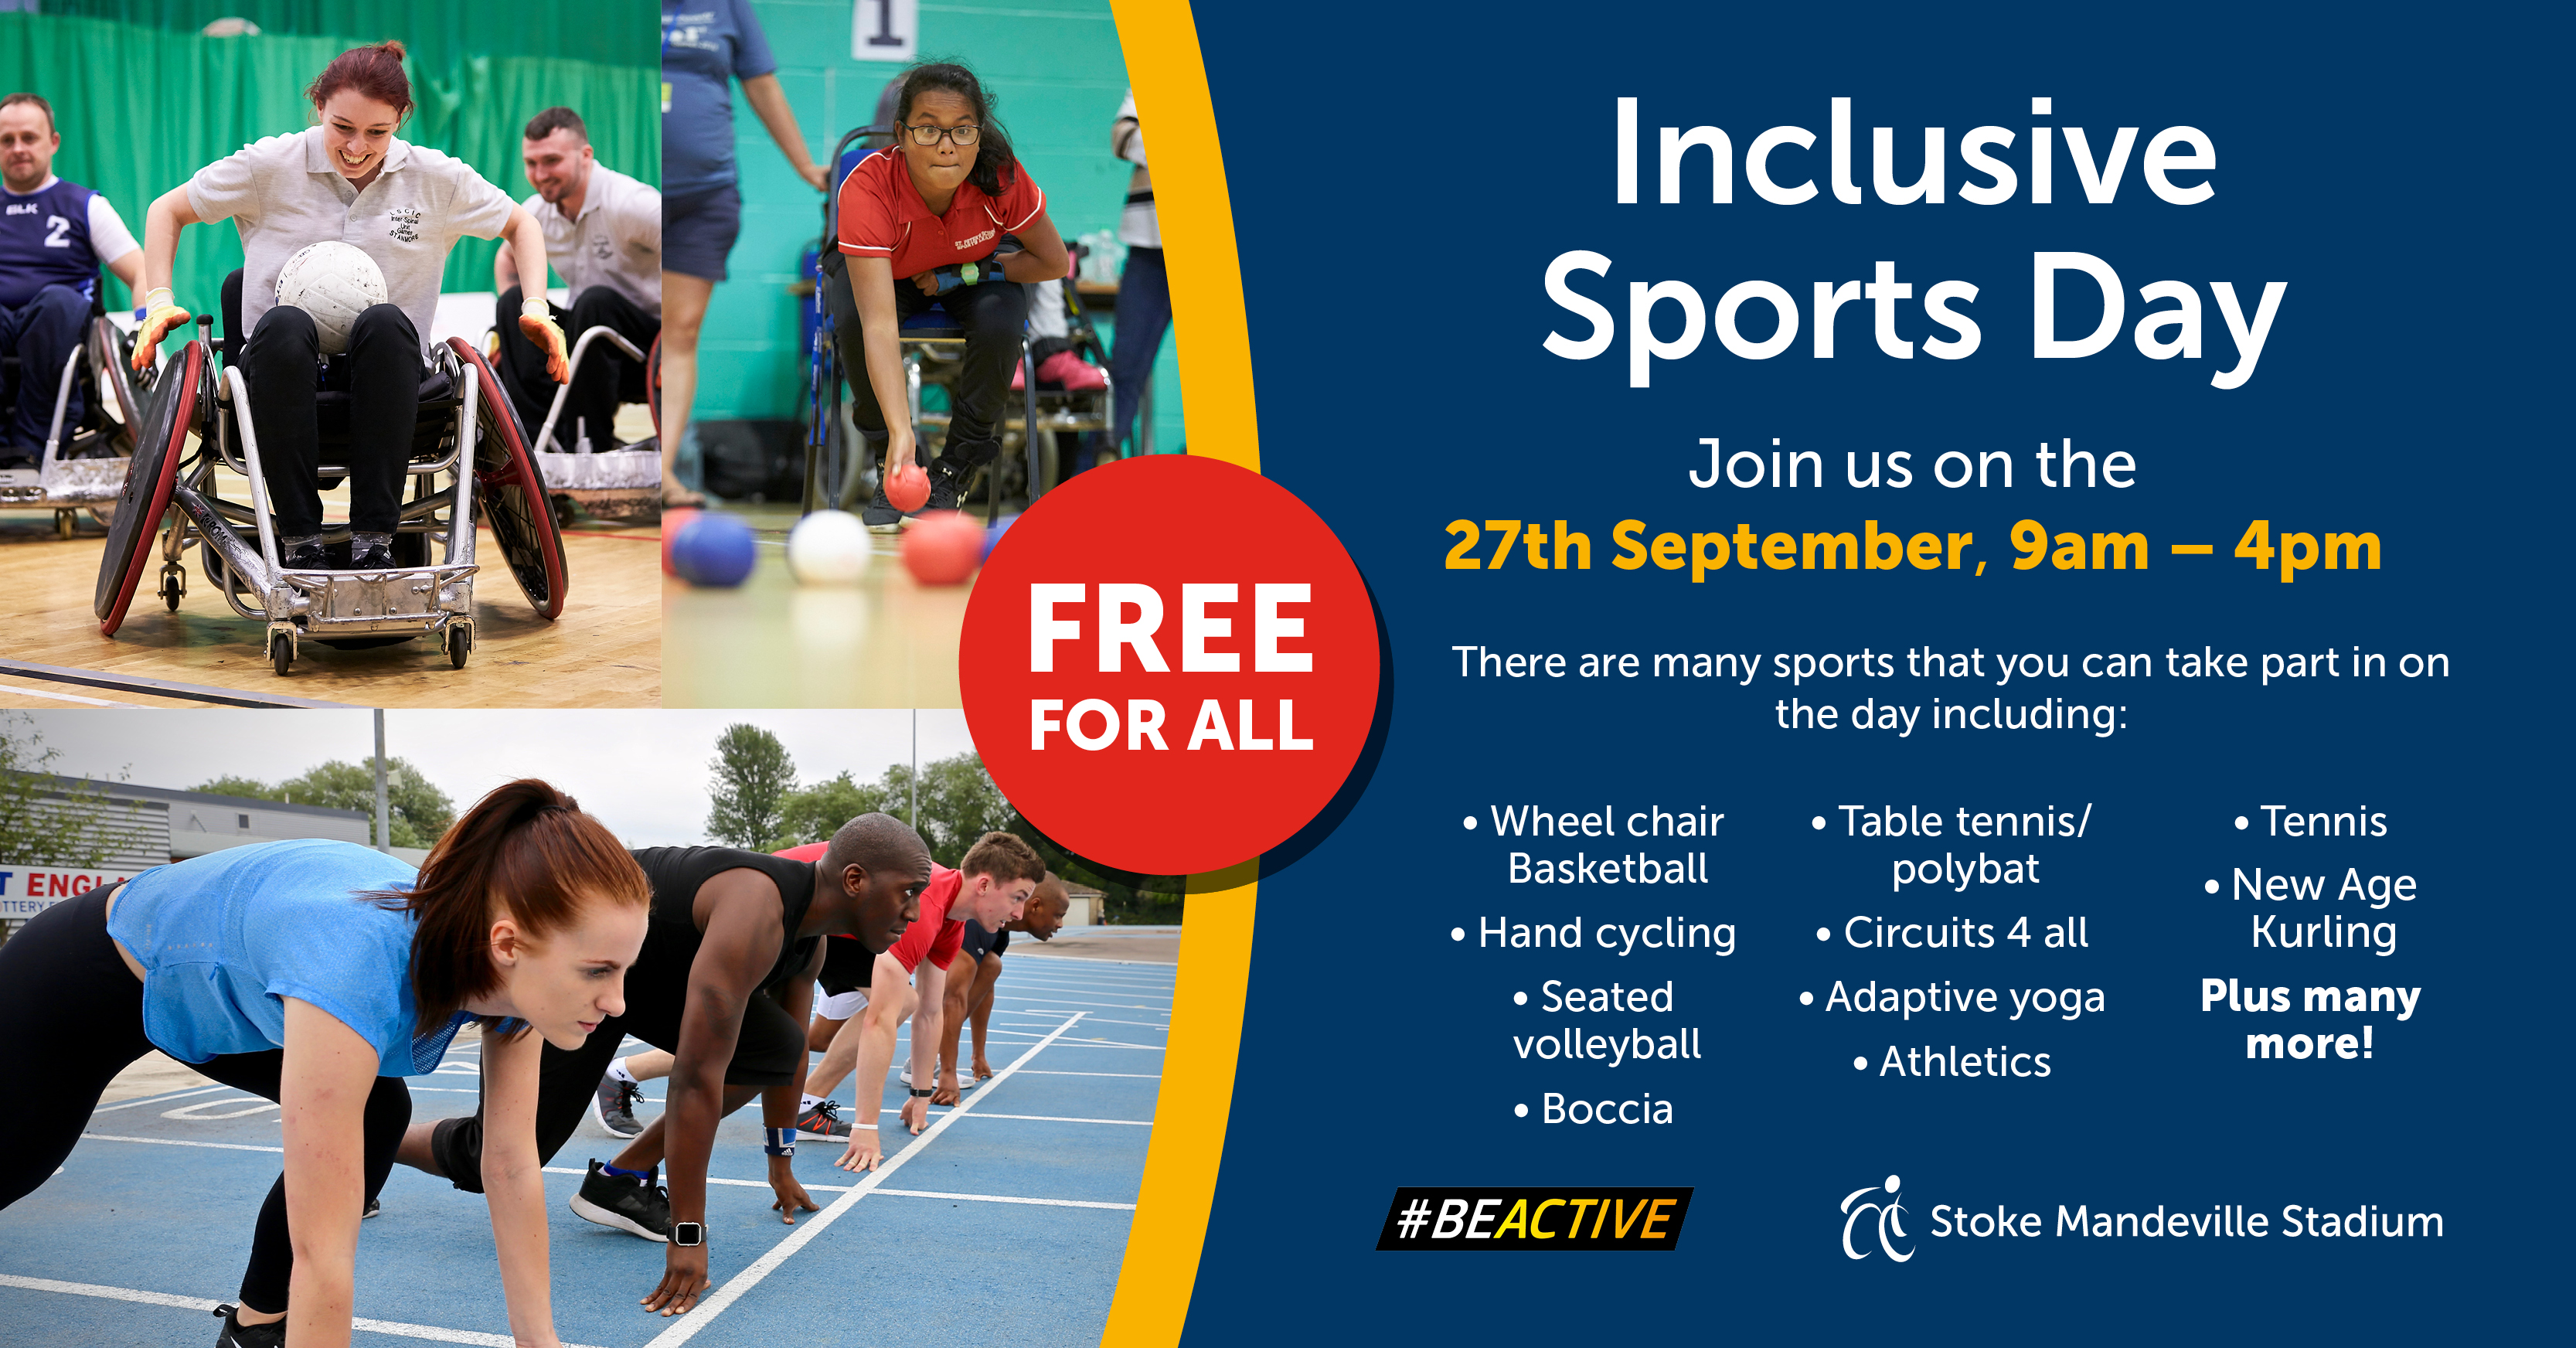 Take part in an Inclusive Sports Day this Friday in Stoke Mandeville